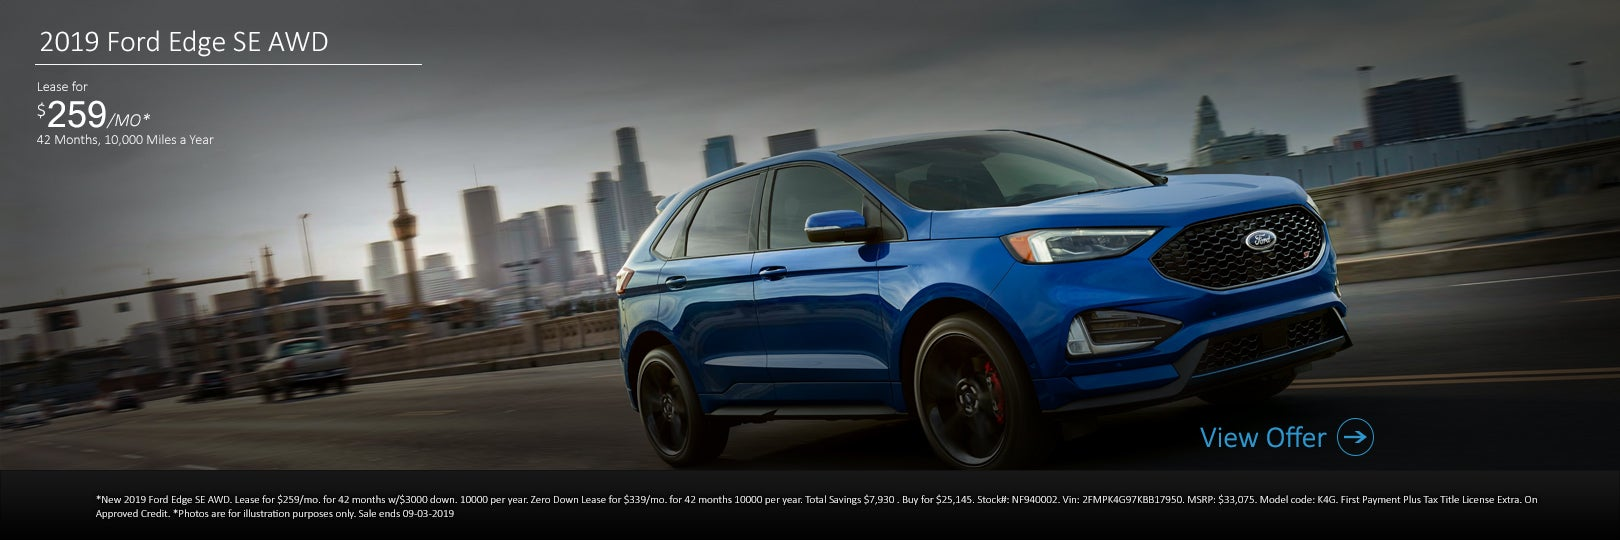 Jeff Belzer Ford >> Jeff Belzer S Ford New And Used Ford Dealer In Minnesota